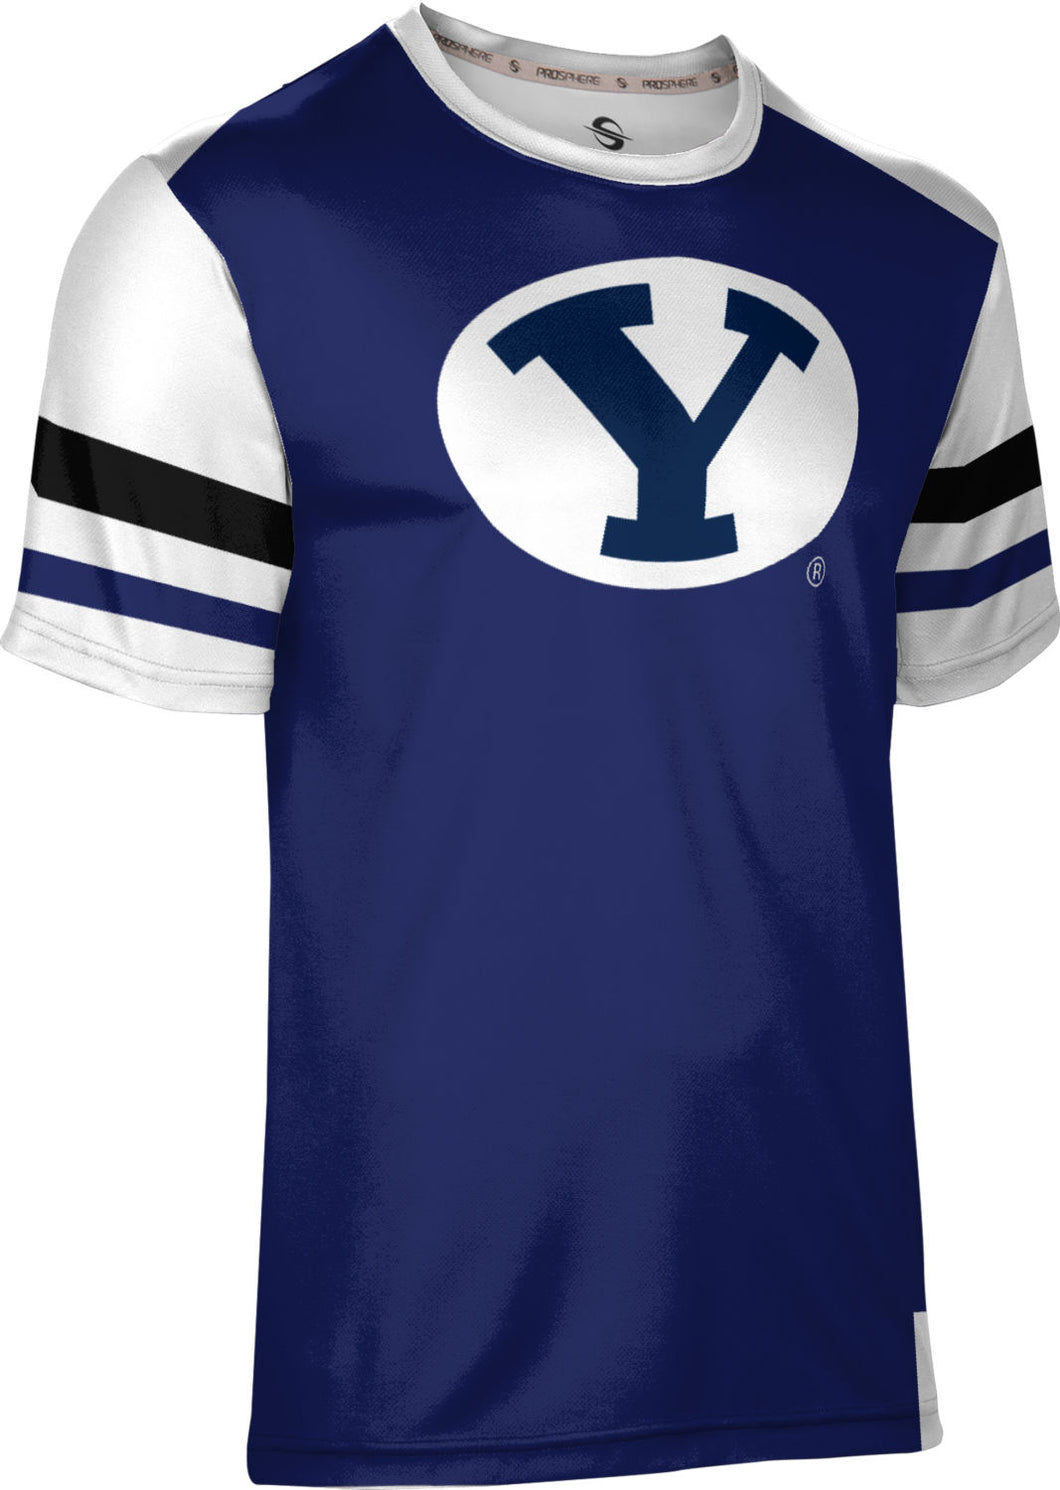 Brigham Young University: Men's T-shirt - Old School